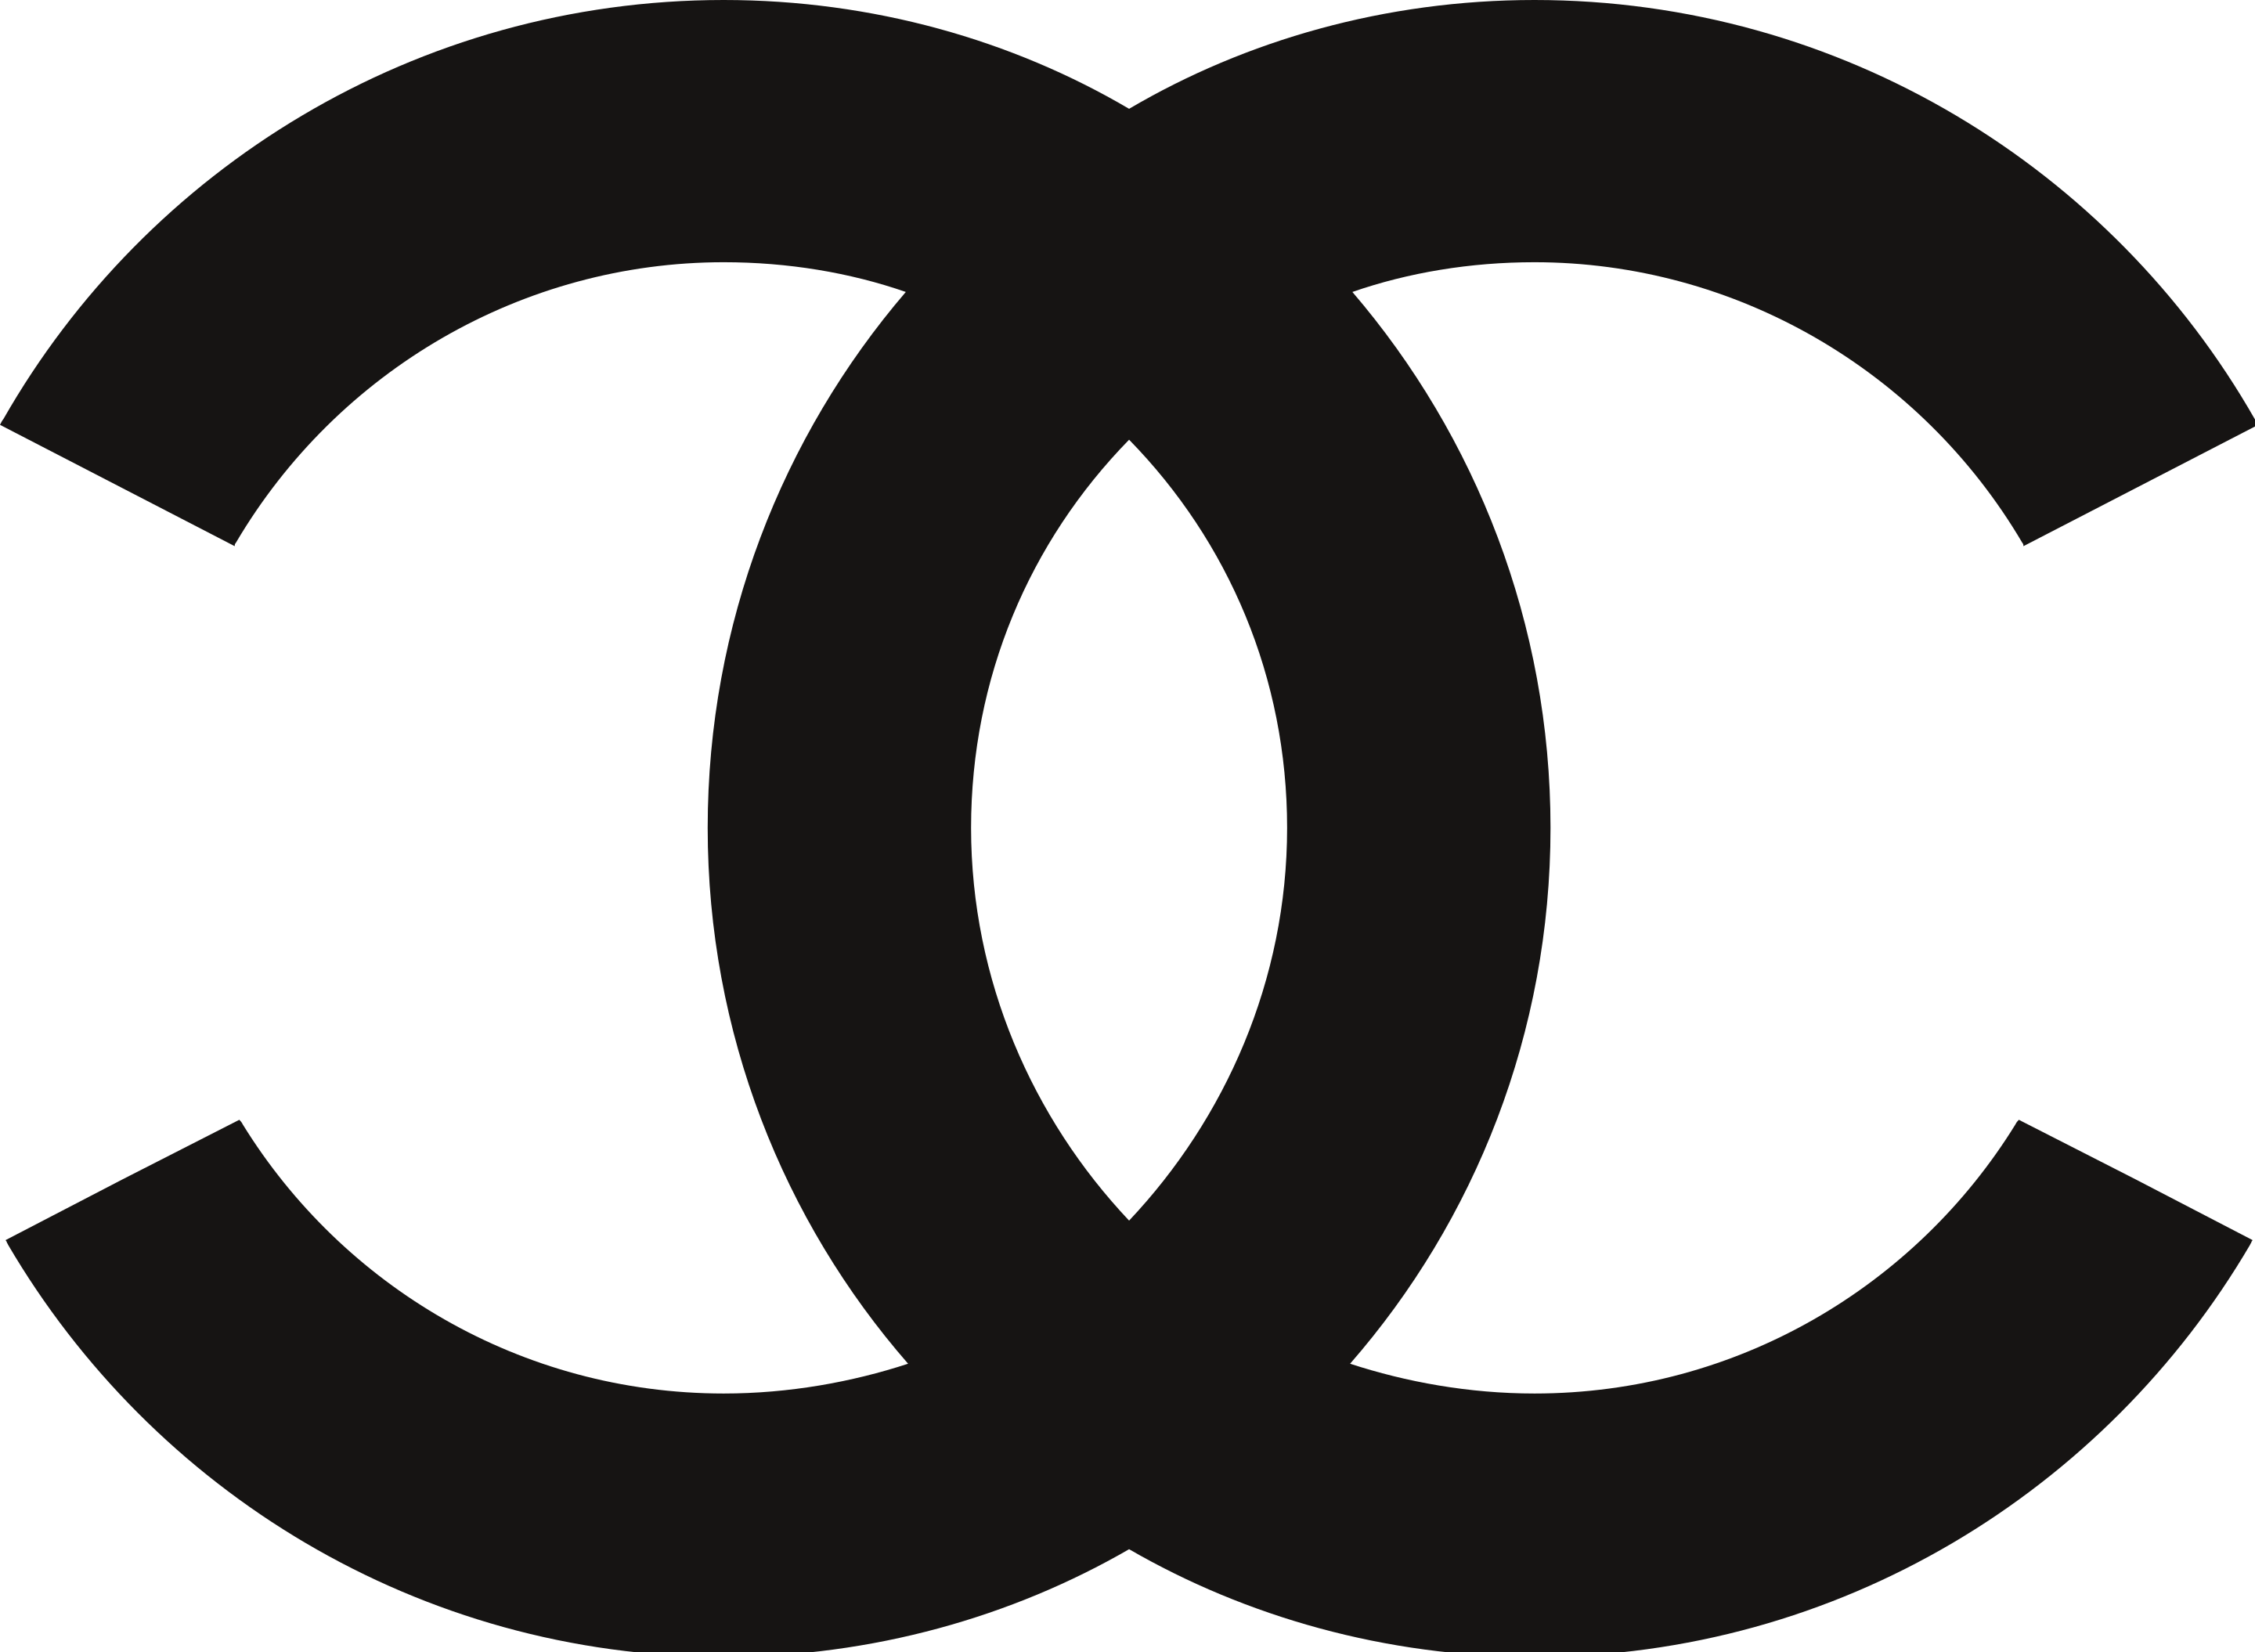 Chanel is famed for its interlocking Cs logo - in black, of course!